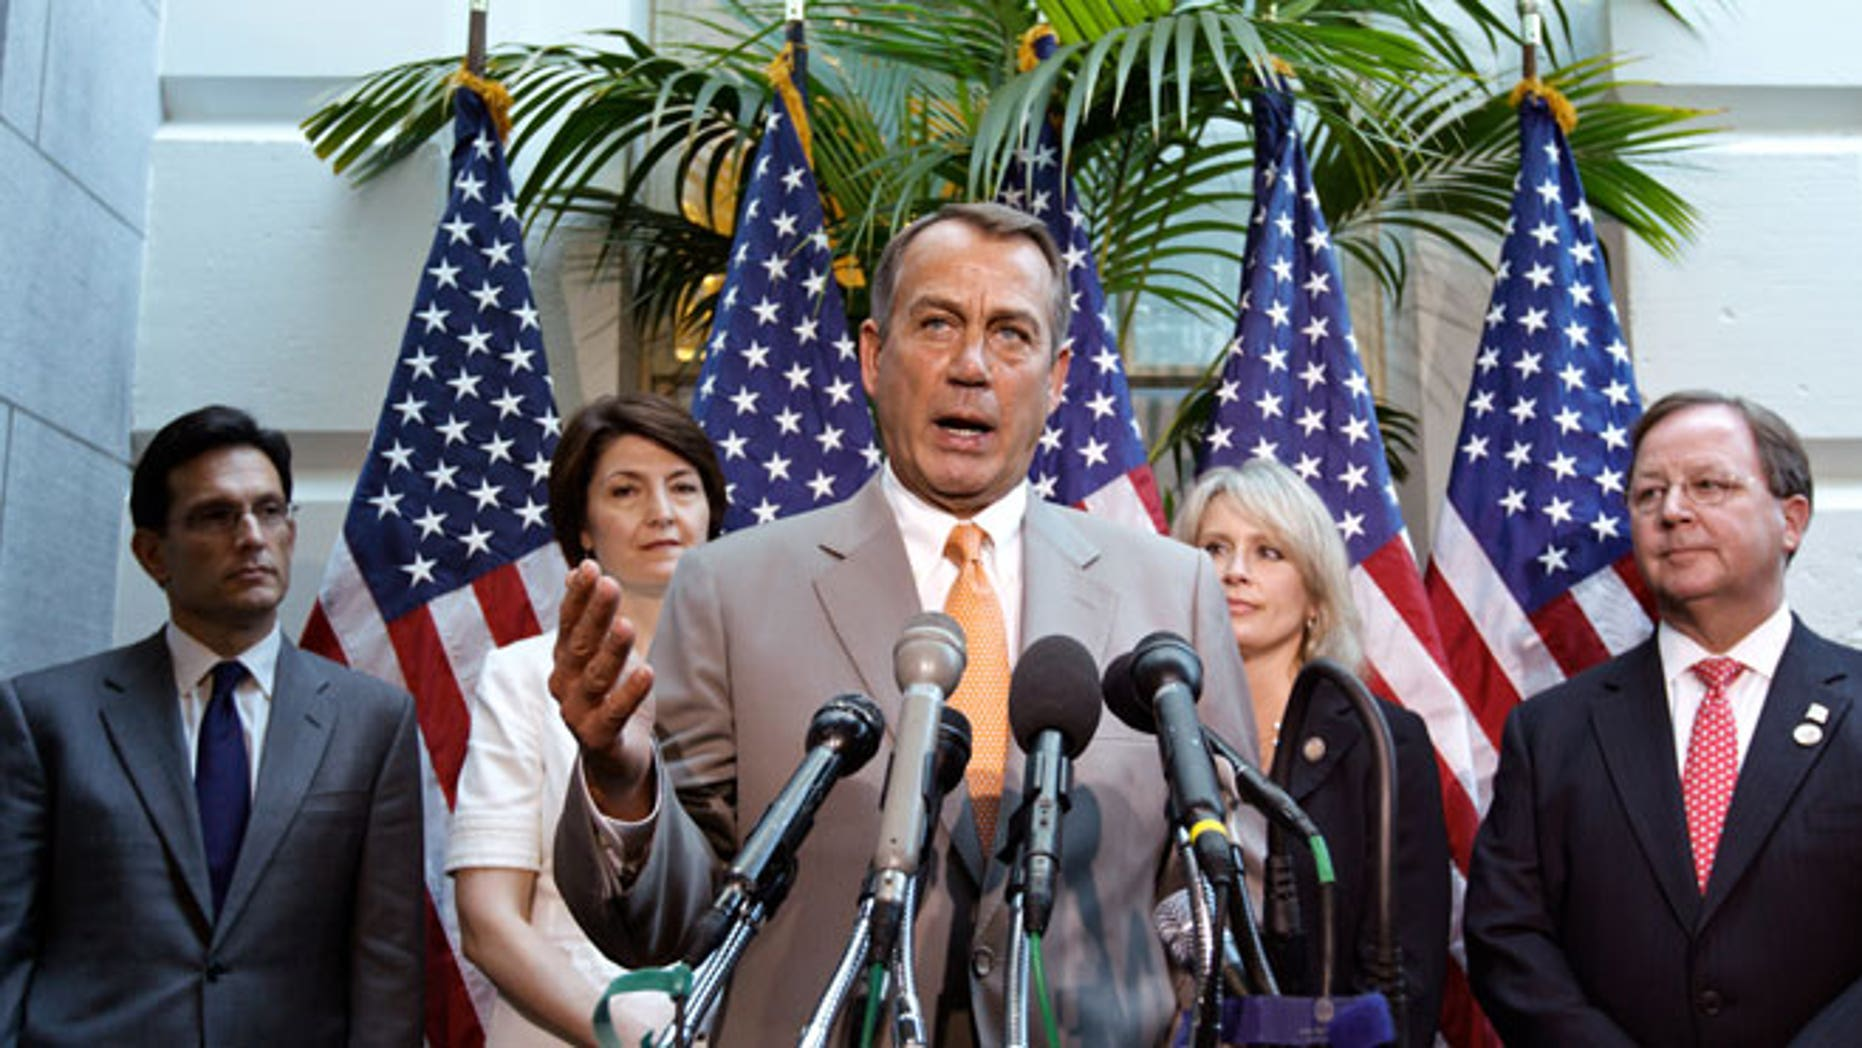 June 27, 2012: House Speaker John Boehner of Ohio, center, joined by other House GOP leaders, gestures during a news conference on Capitol Hill in Washington.